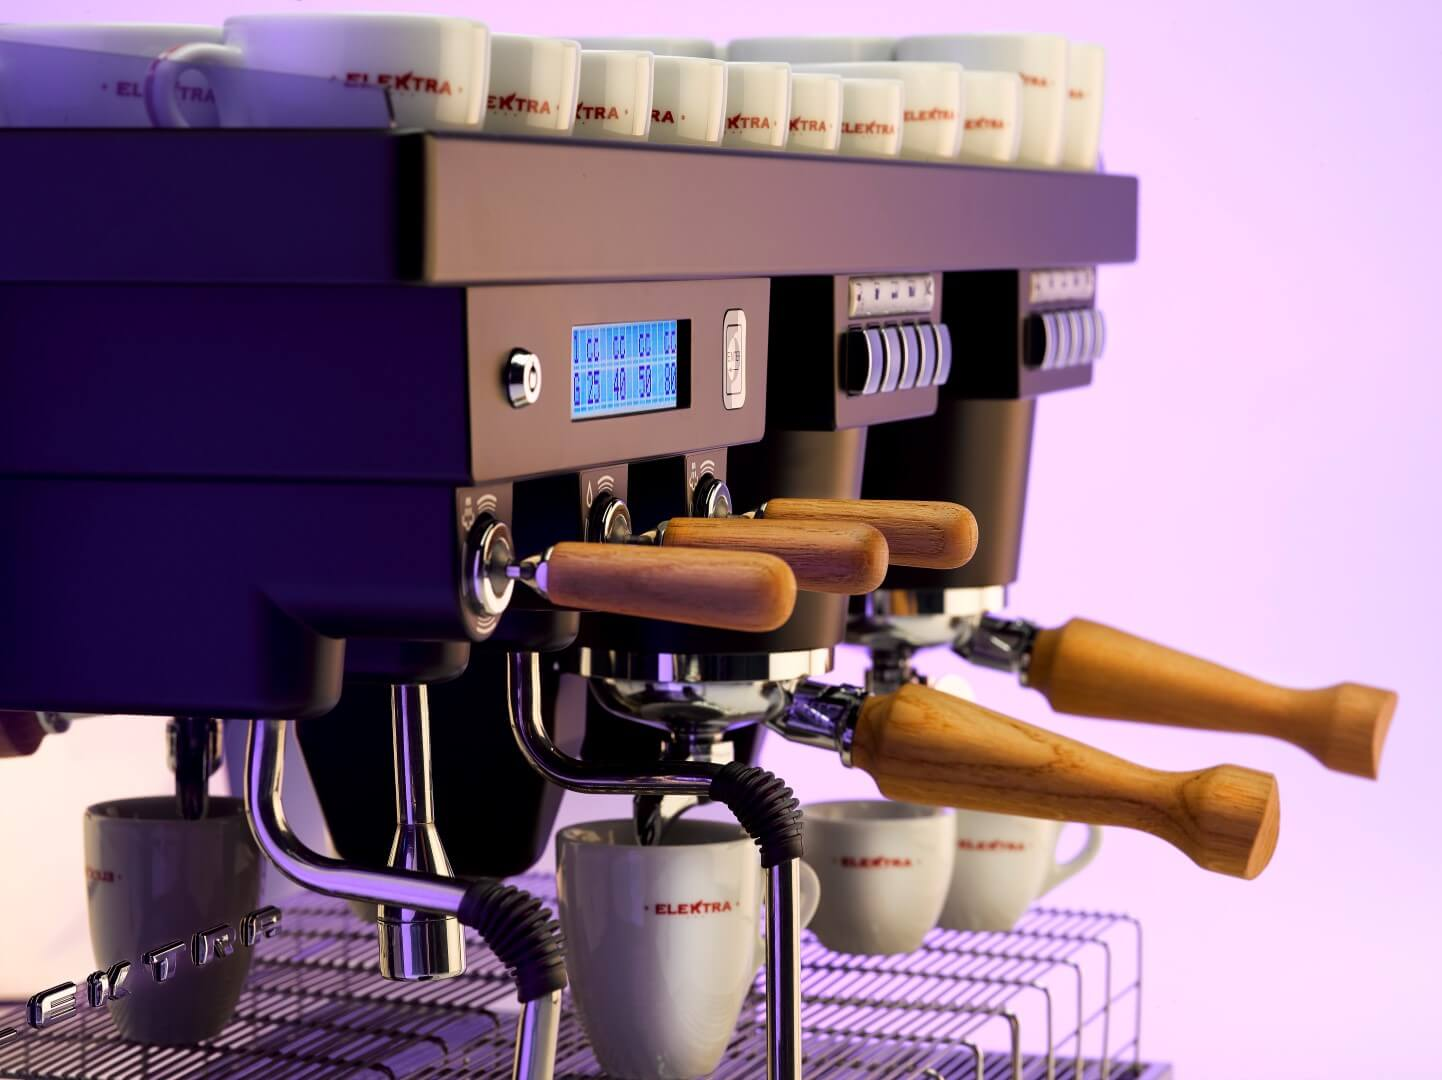 Elektra KUP Automatic Coffee Machine - 3 Group